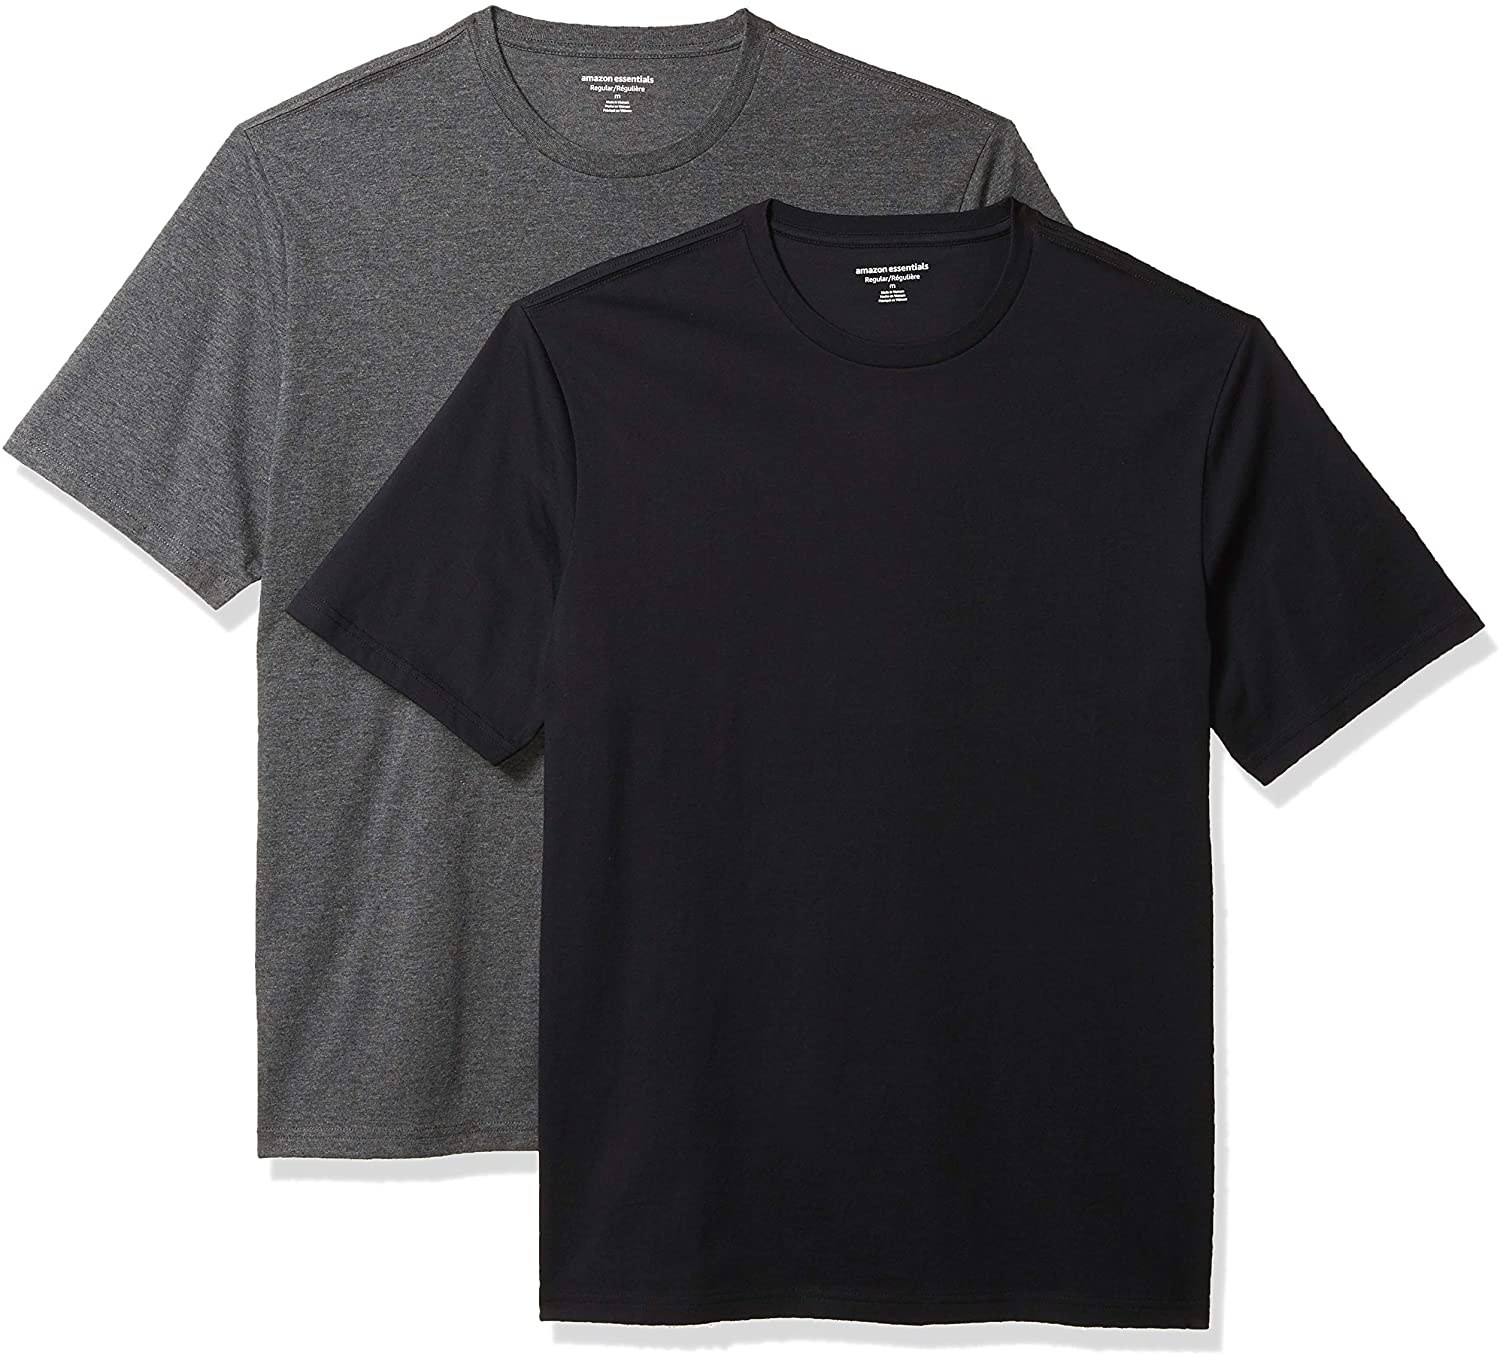 the gray and black T-shirts